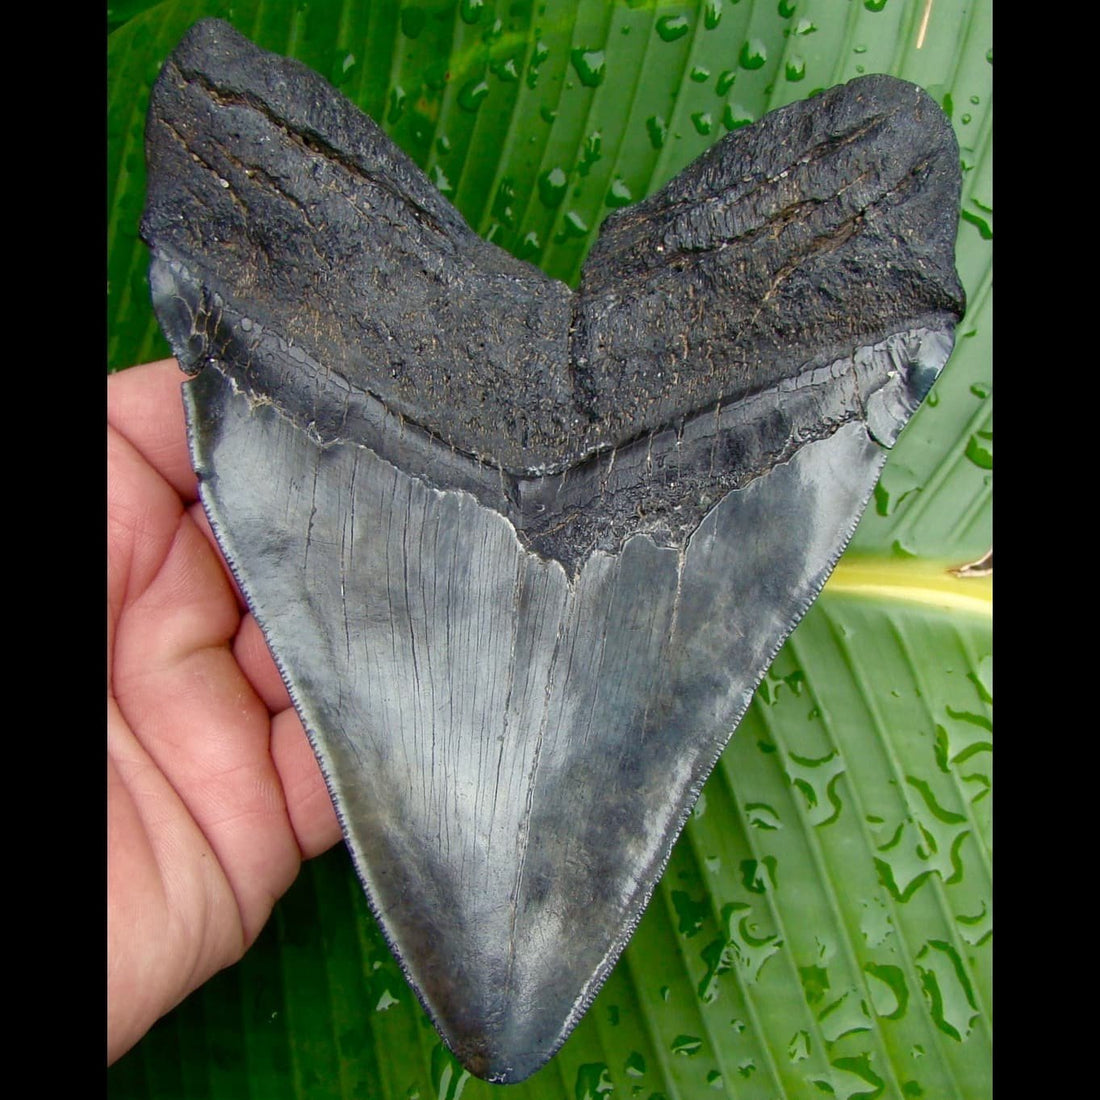 Megalodon Tooth HUGE - 5 & 7/8 in. South Carolina Megalodon Shark Tooth